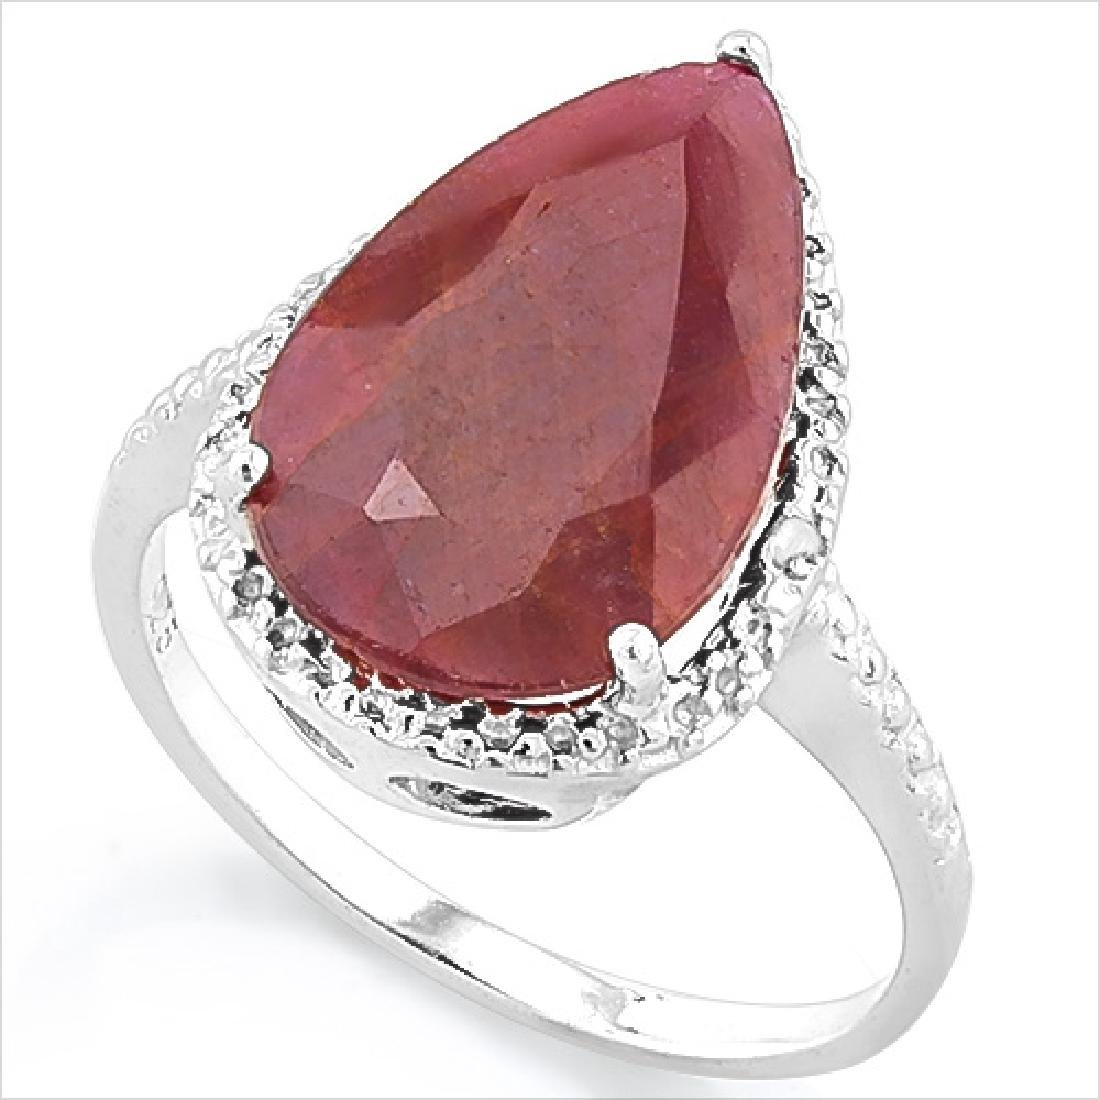 BEAUTIFUL 6CT PEAR CUT GENUINE RUBY GEMSTONE RING